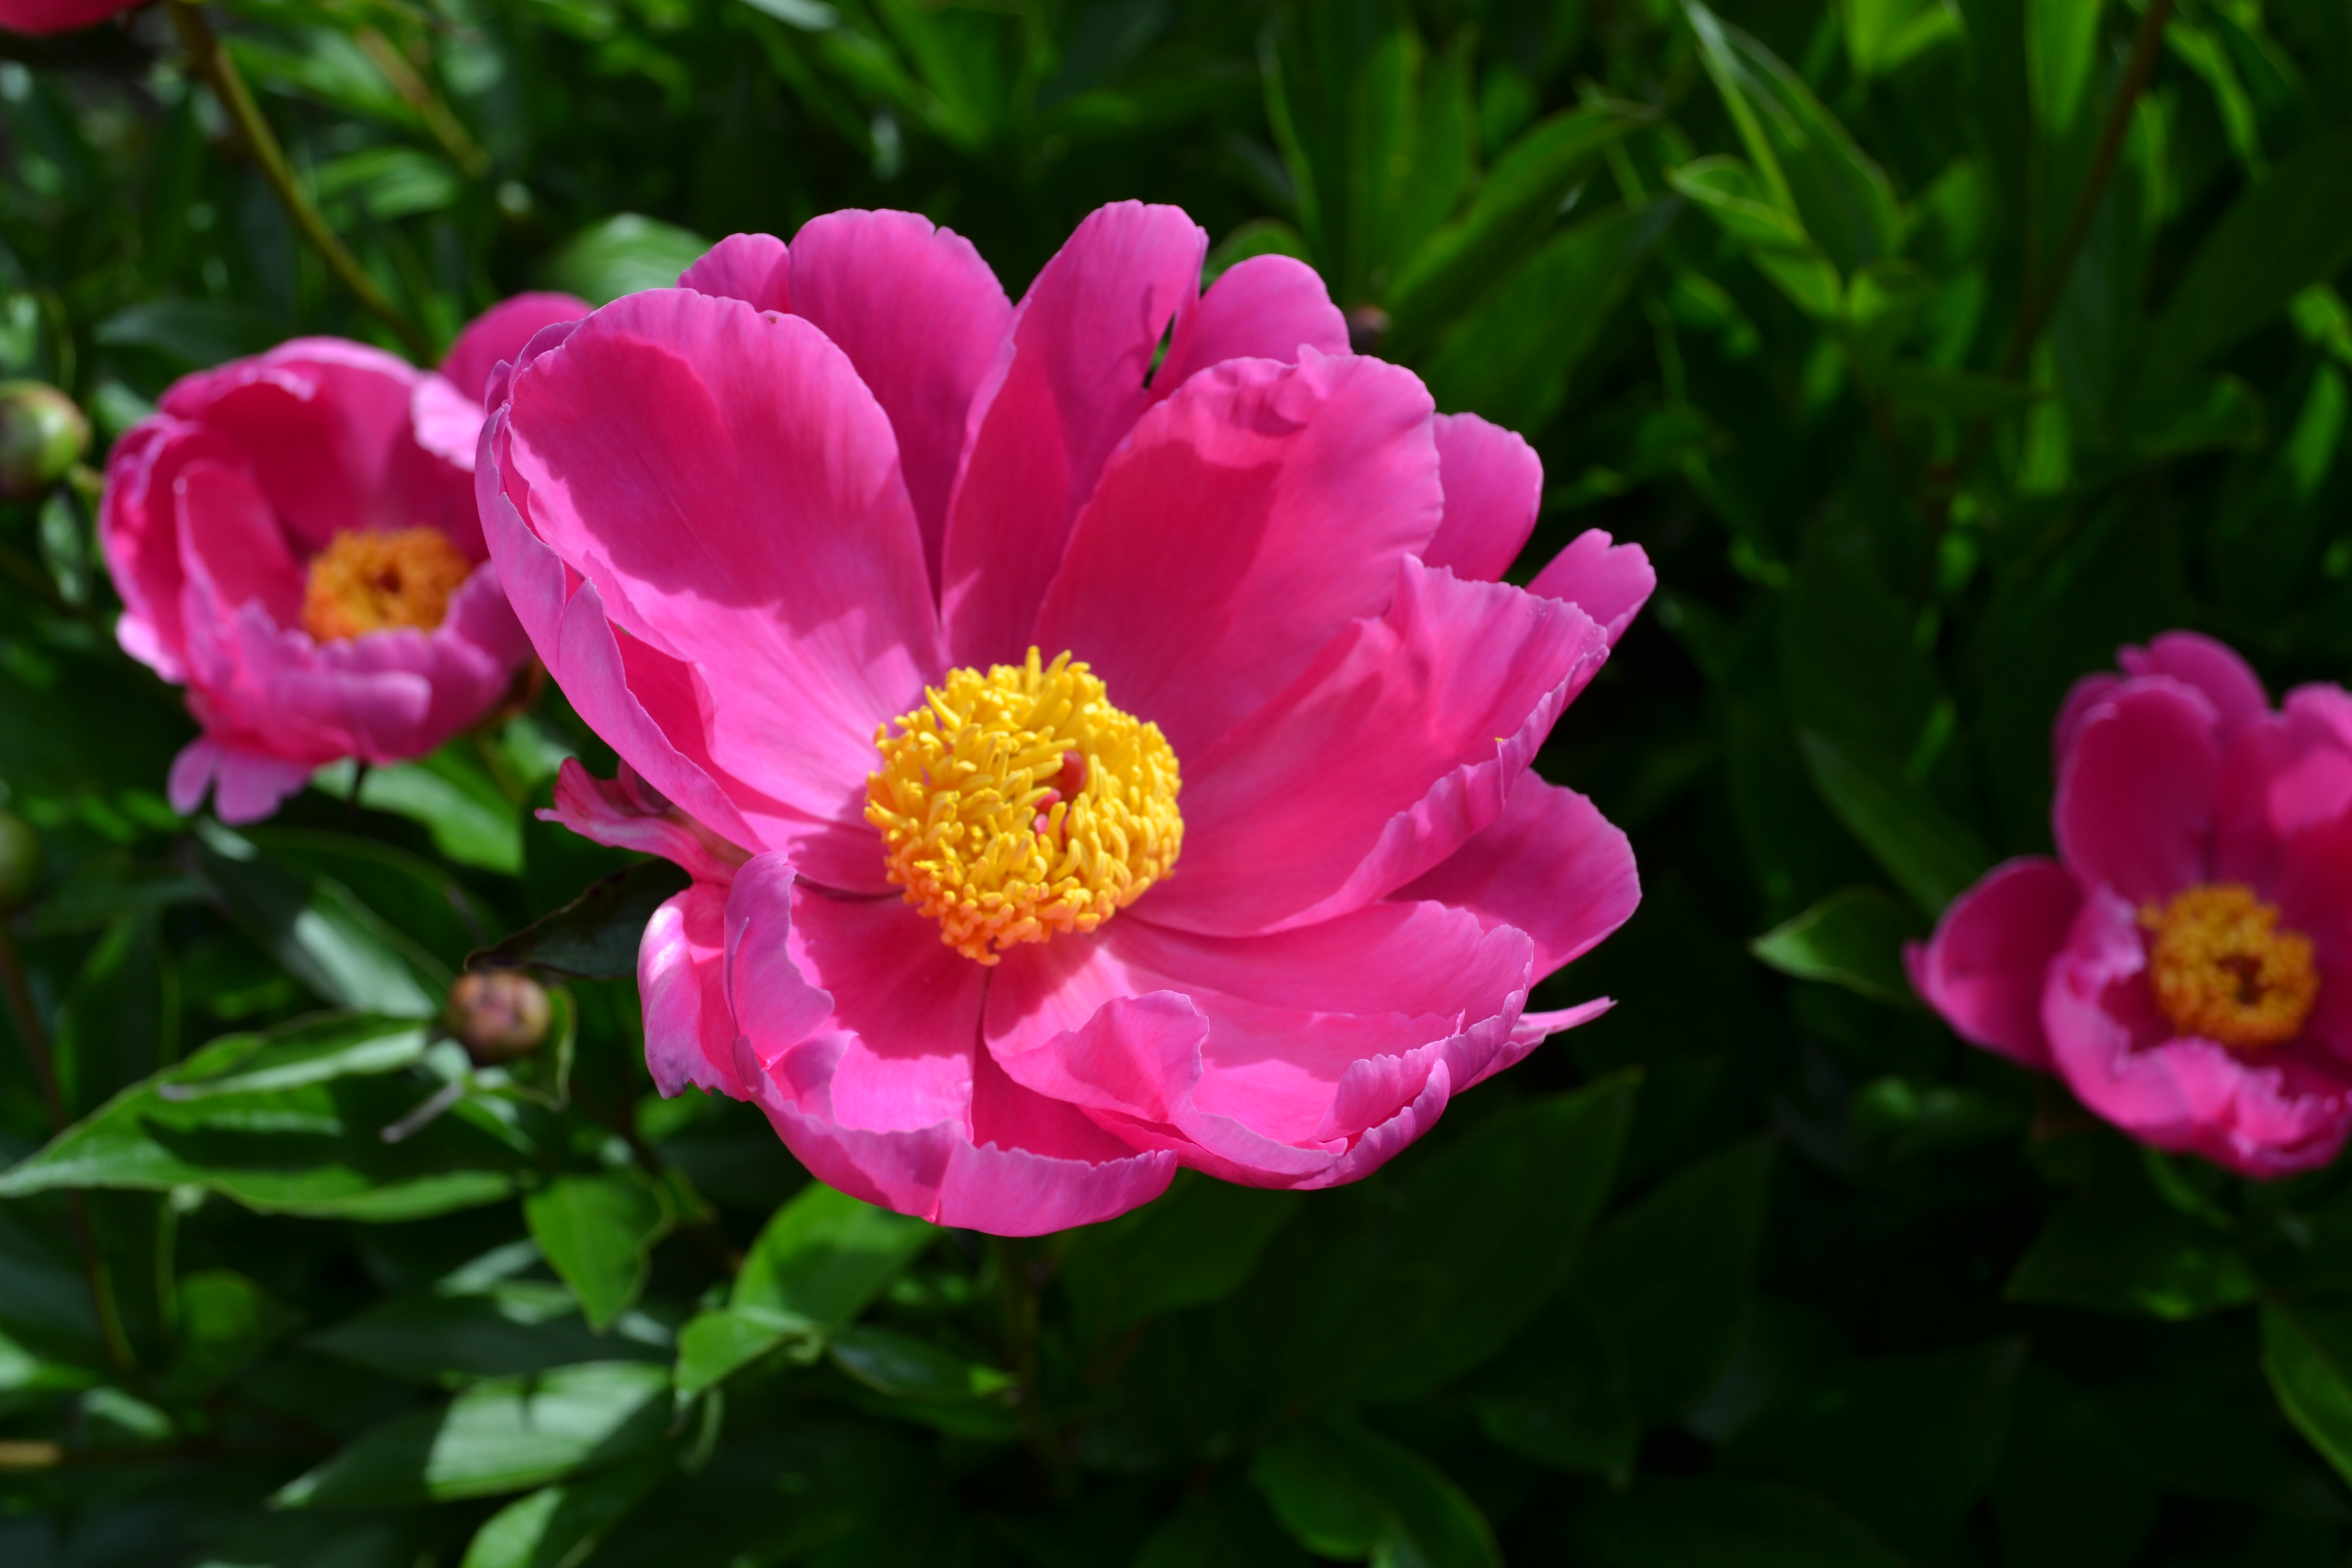 Fun facts about peonies frankie flowers grow eat live outdoors your garden expert - Growing peonies in the garden ...